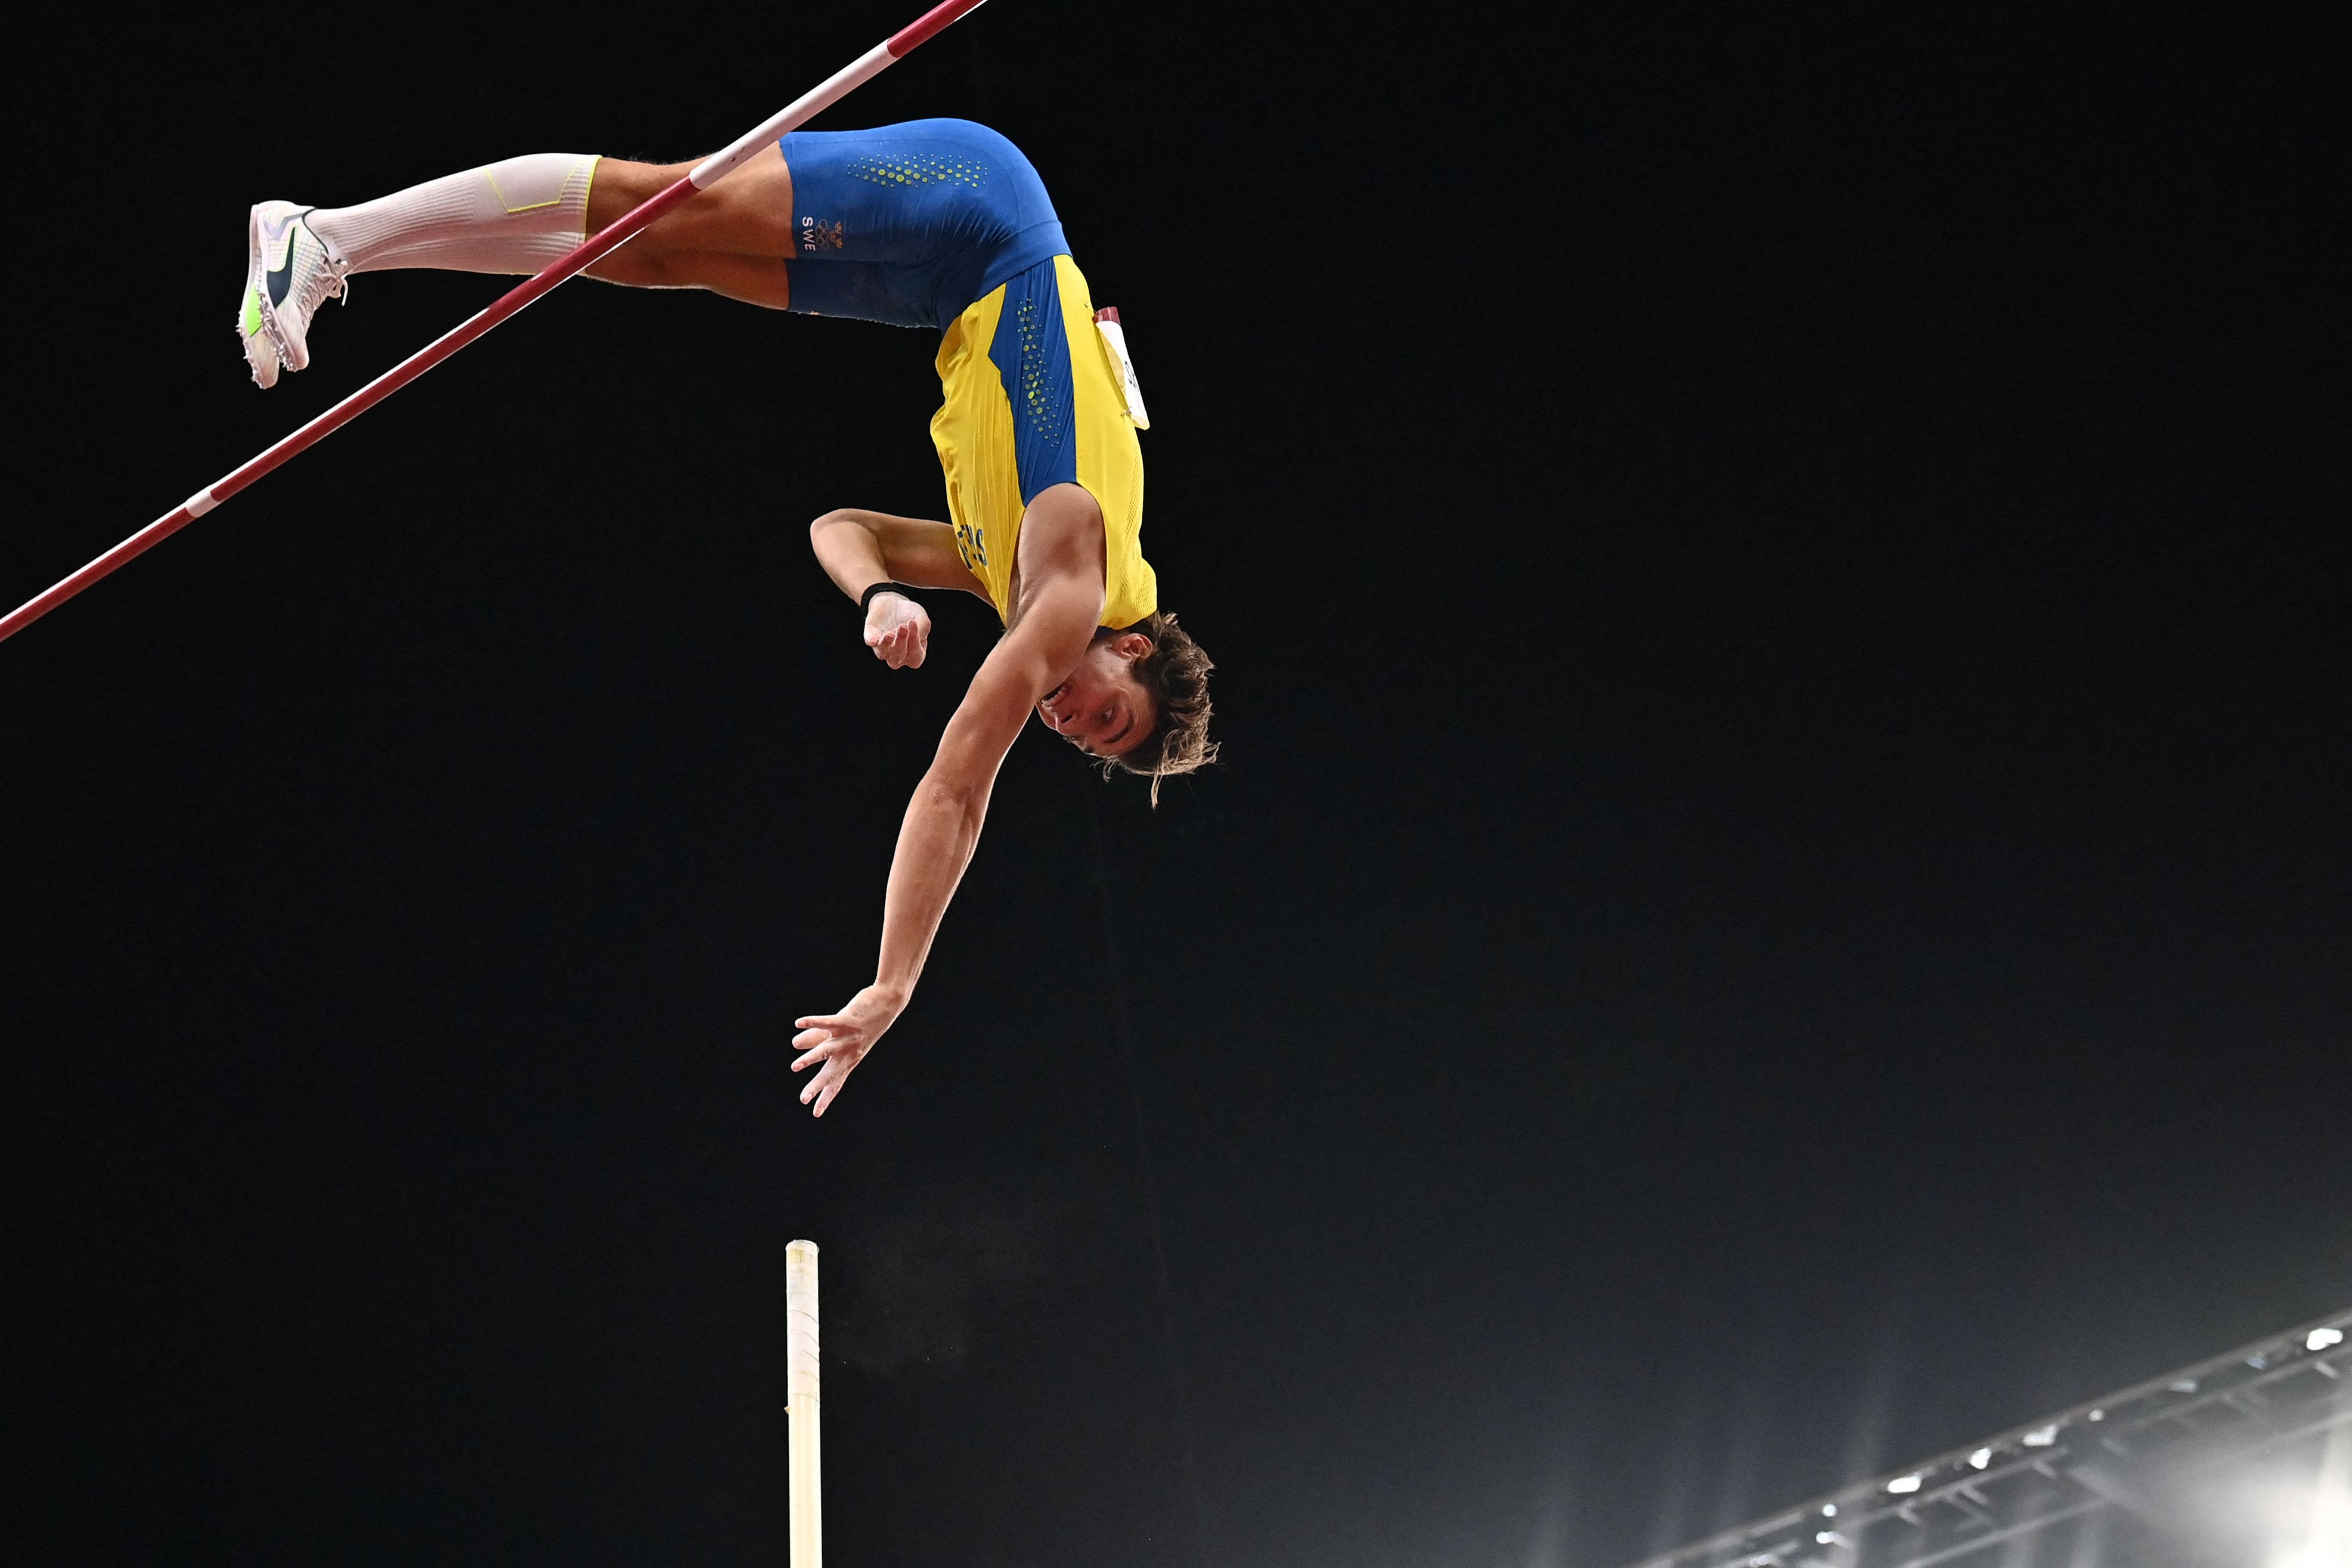 Athletics: 'I don't know my limits' - Duplantis aiming high after Olympic gold